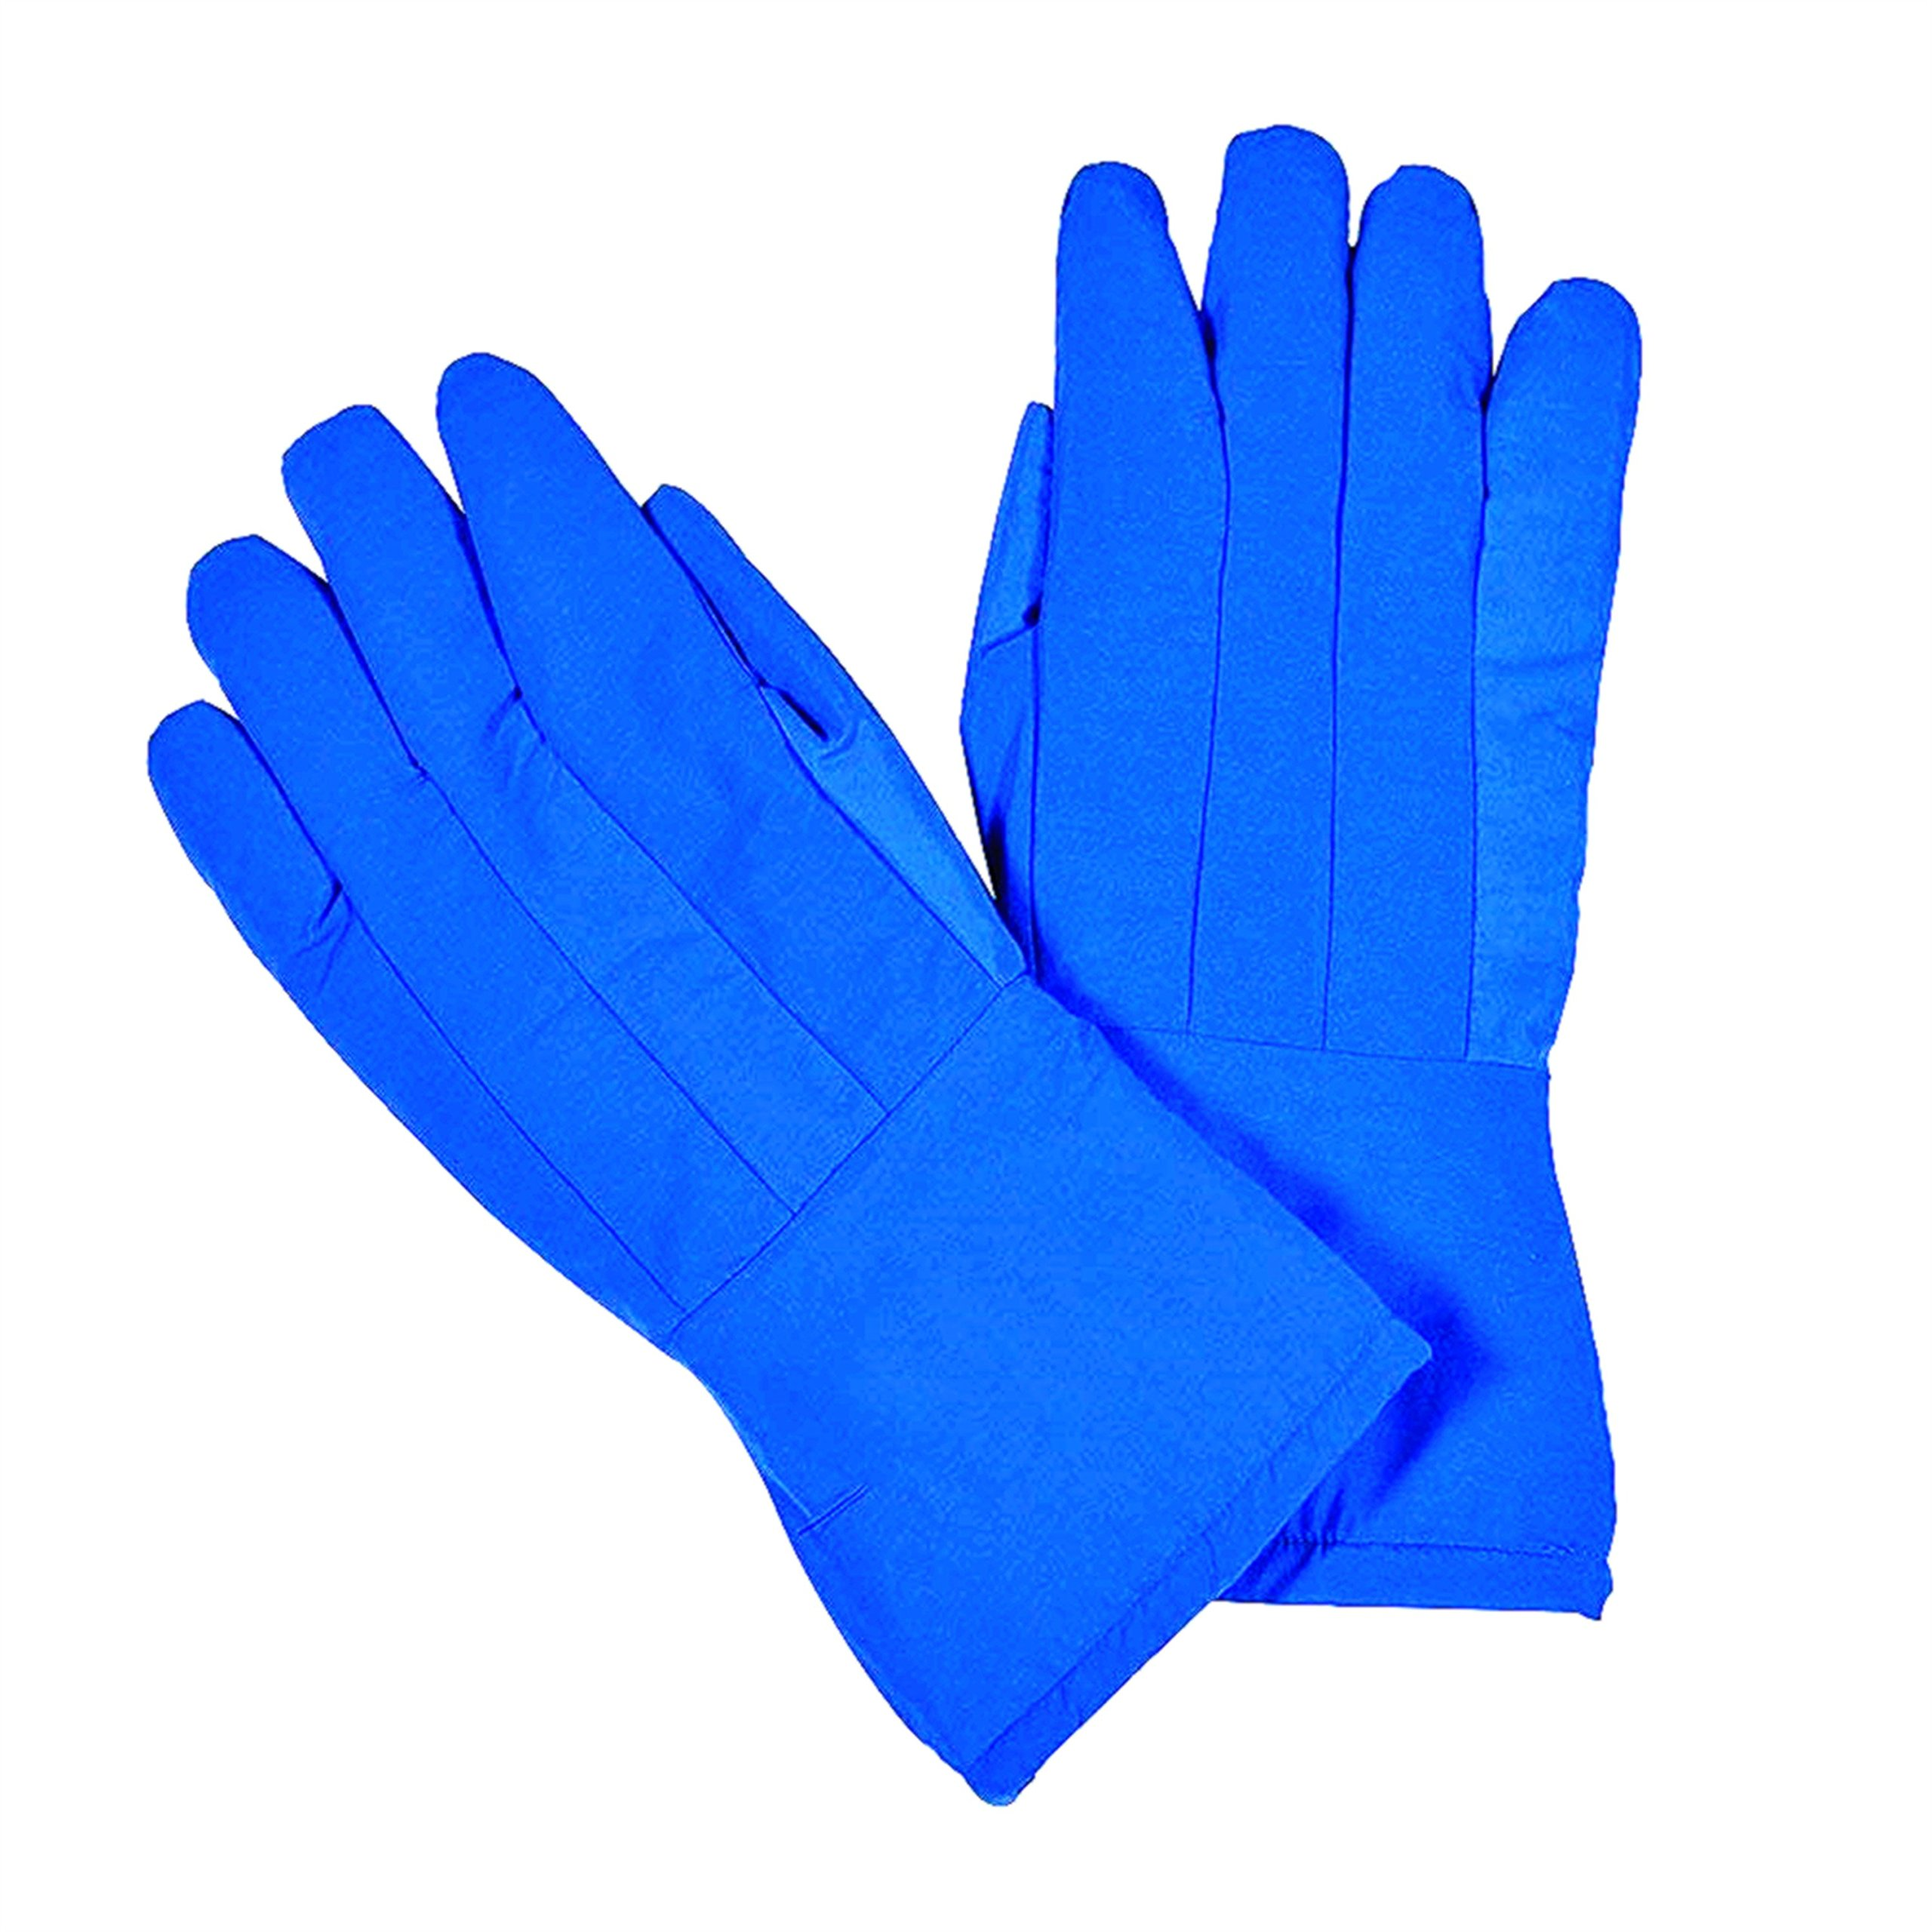 Mufly Cryogenic Gloves Waterproof MA Work Gloves for Extremely Cold Environment, Mid-Arm,38cm by Mufly (Image #1)